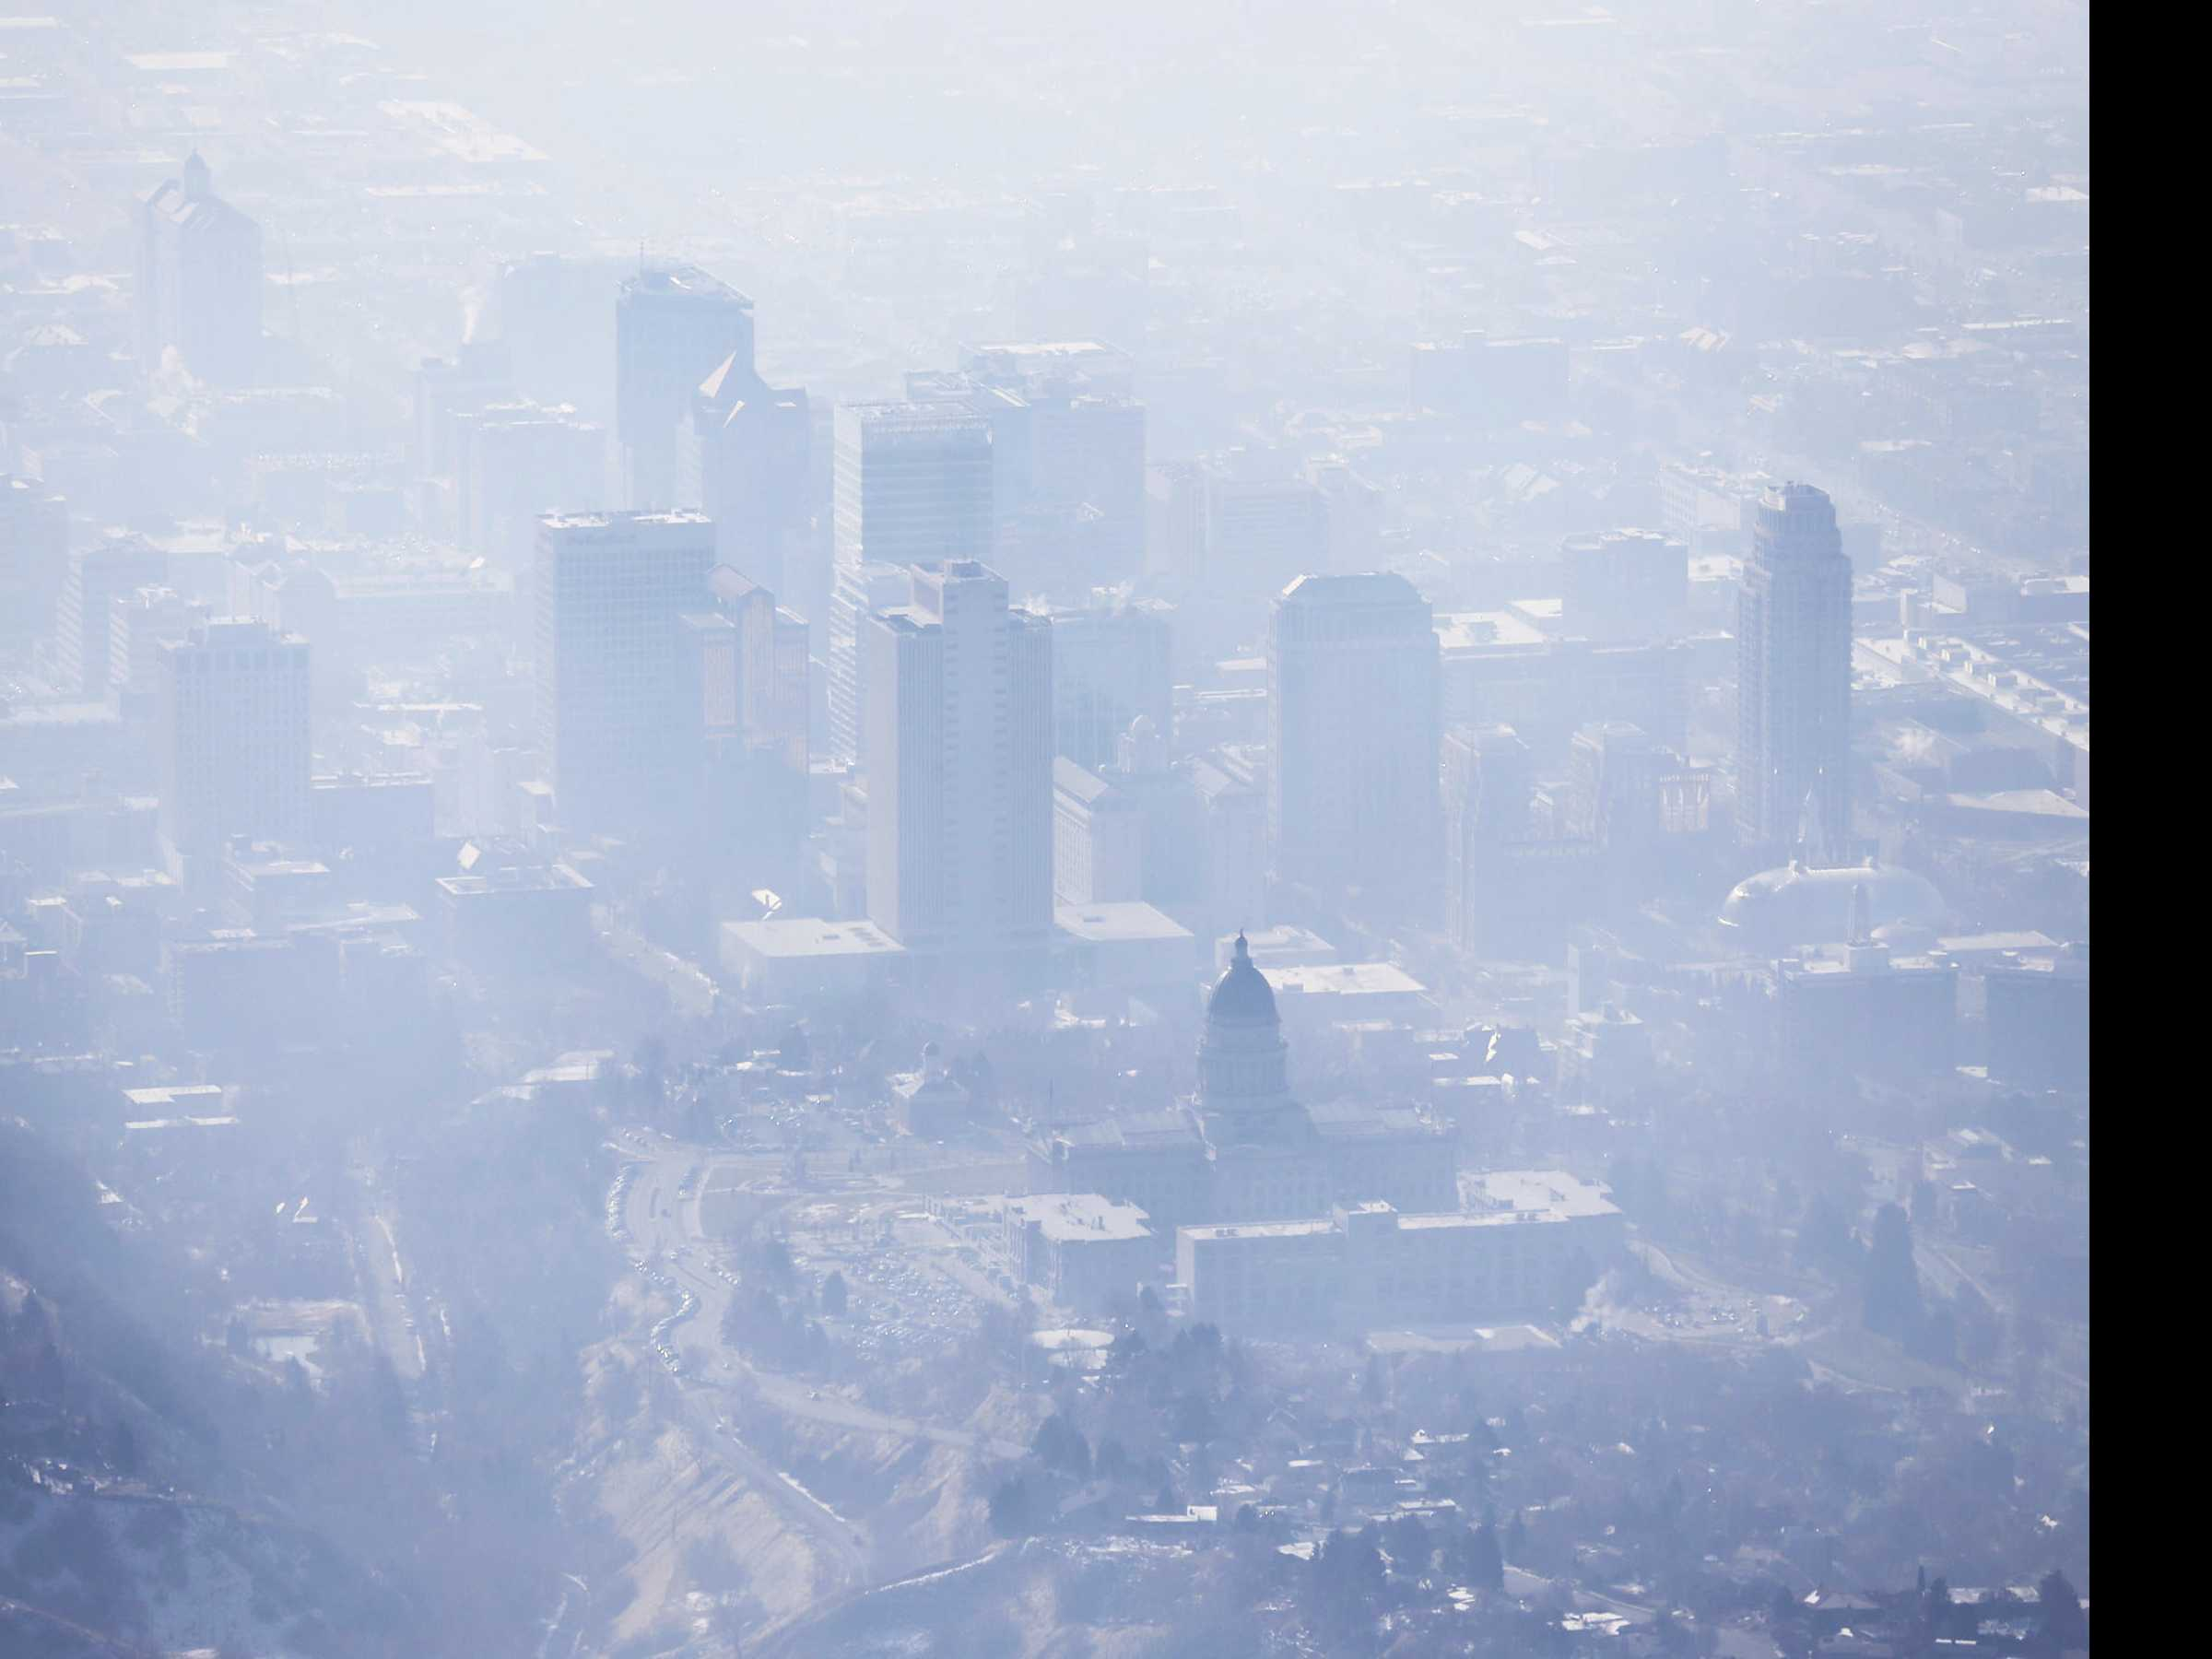 Disasters Influence Thinking on Climate Change